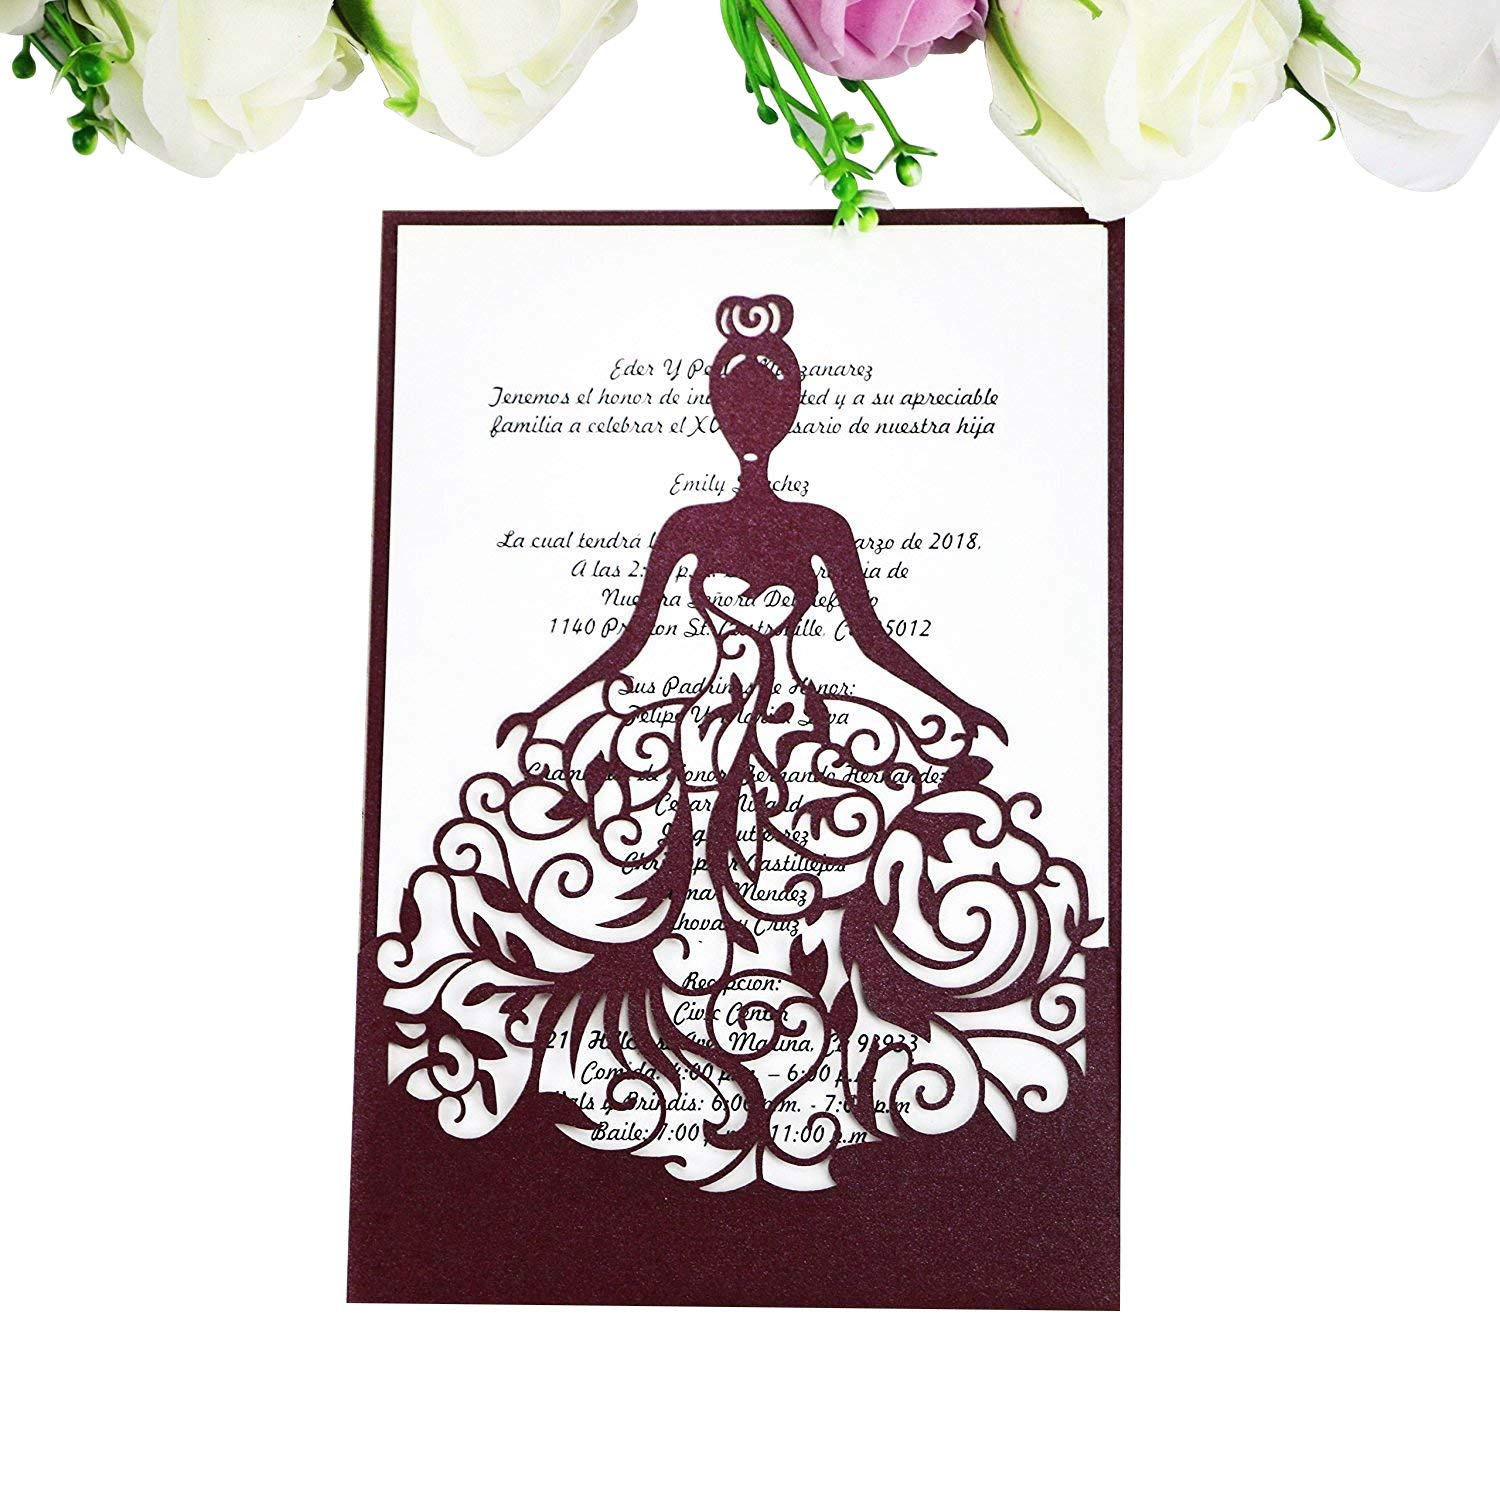 PONATIA 25PCS Laser Cut Crown Wedding Invitations Cards for Birthday Sweet 15 Quinceñera Party Invite, Wedding Bridal Engagement Invite (White)